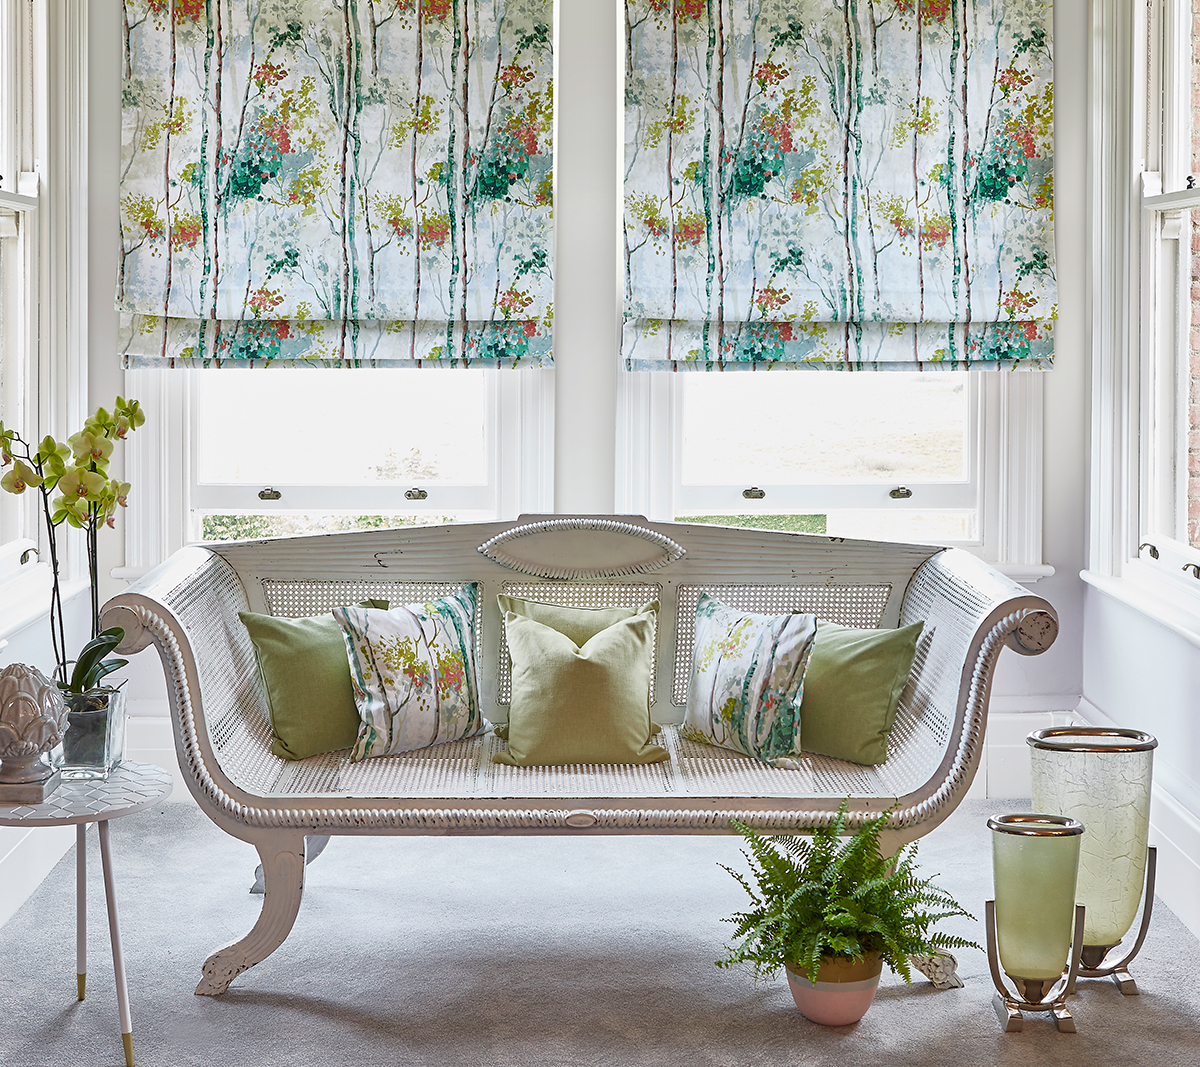 Silver Birch Willow Roman Blinds from SLX